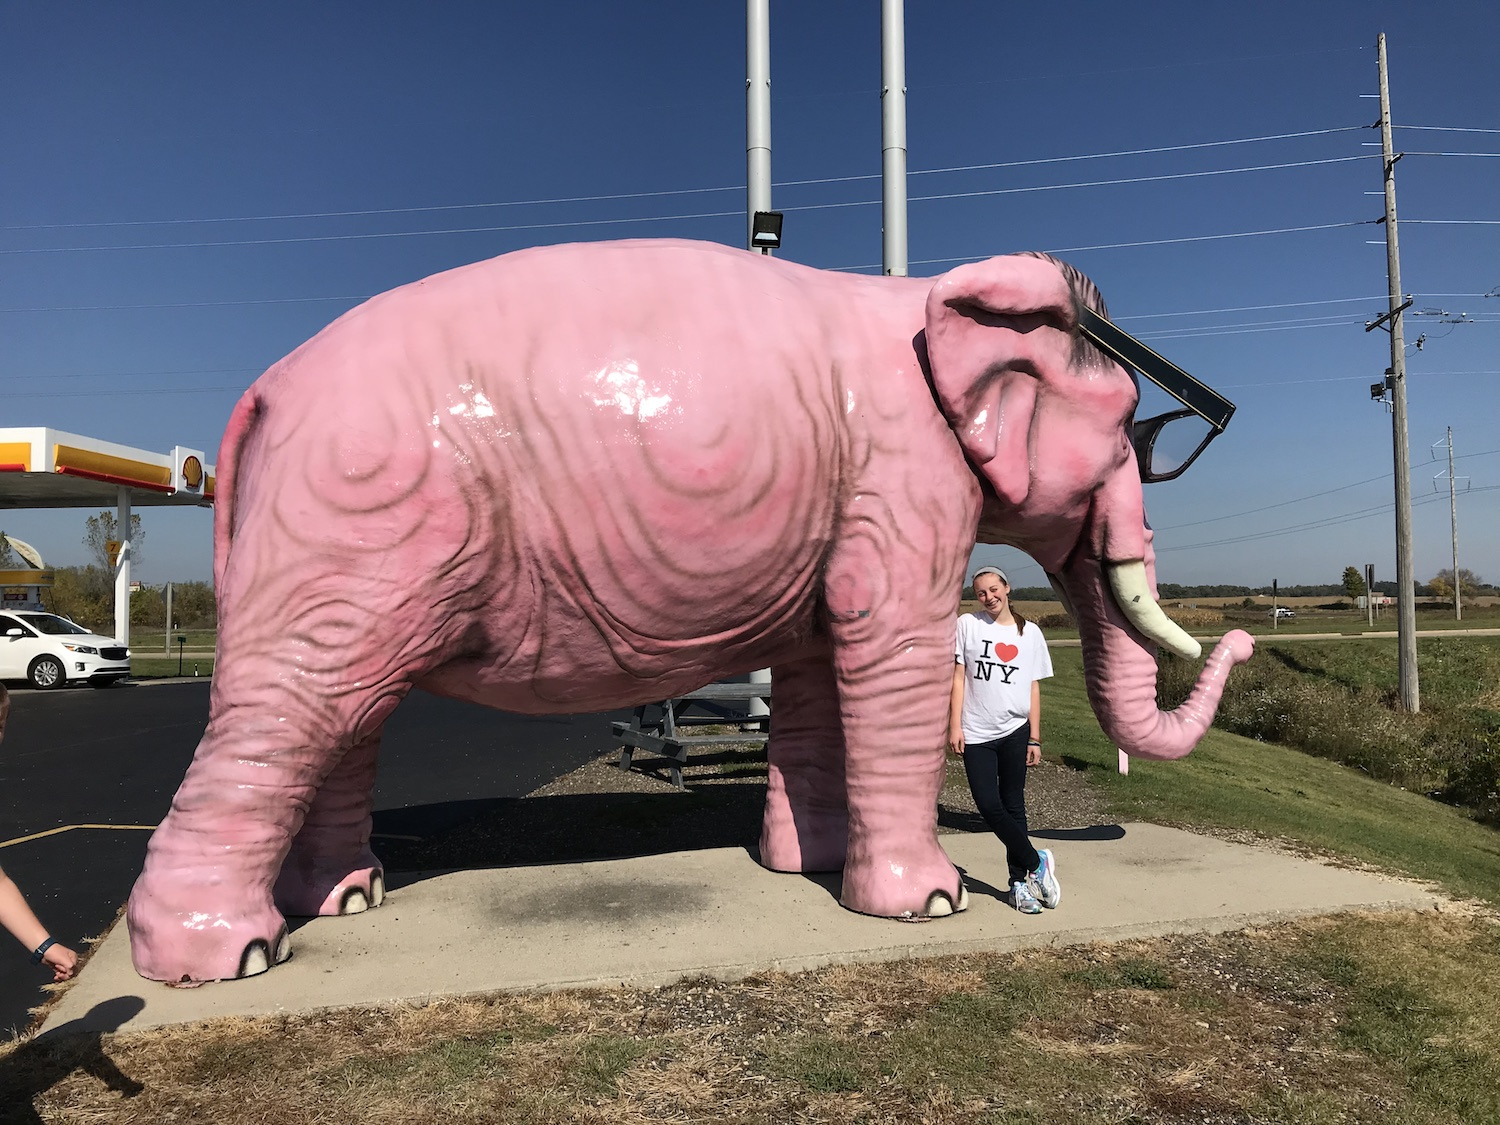 Giant Pink Elephant Deforest Wisconsin